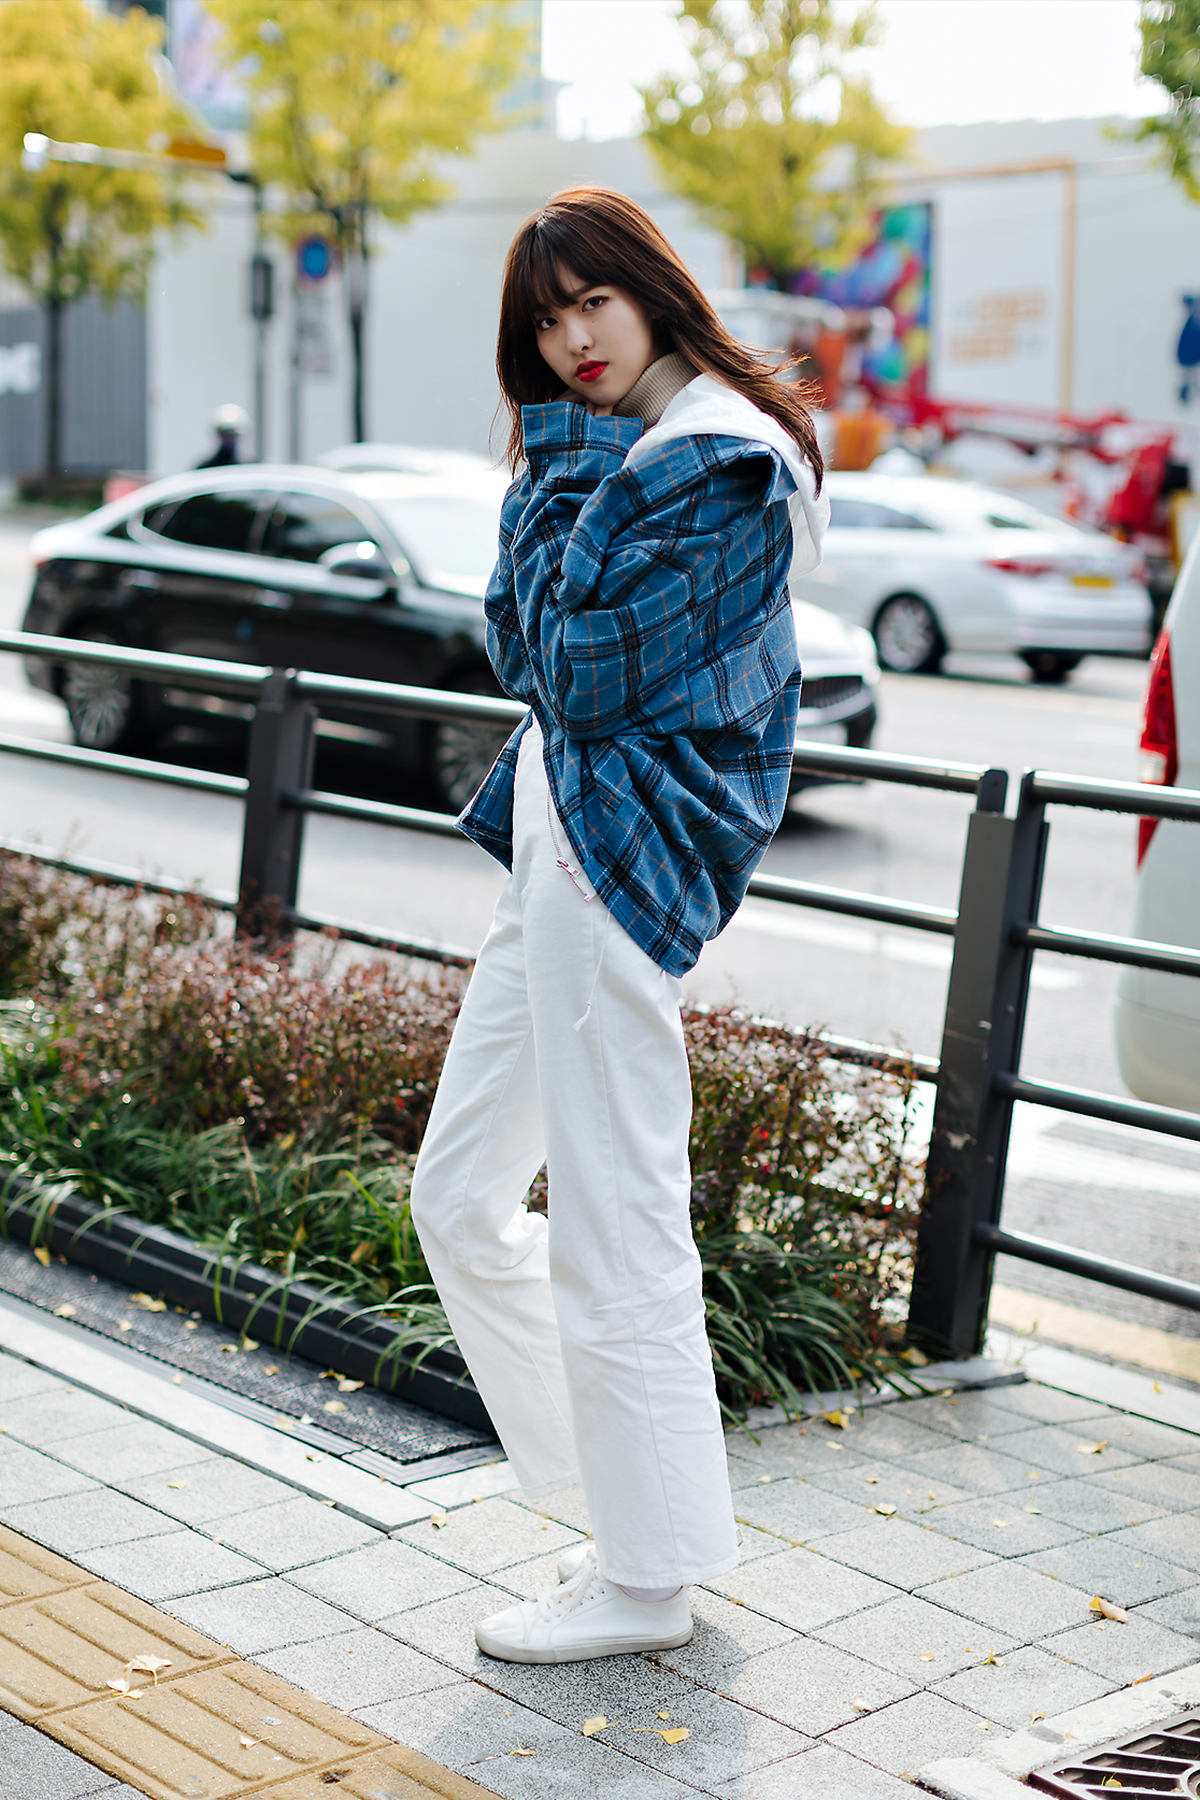 Women fall street style fourth week of october 2018 in seoul 9